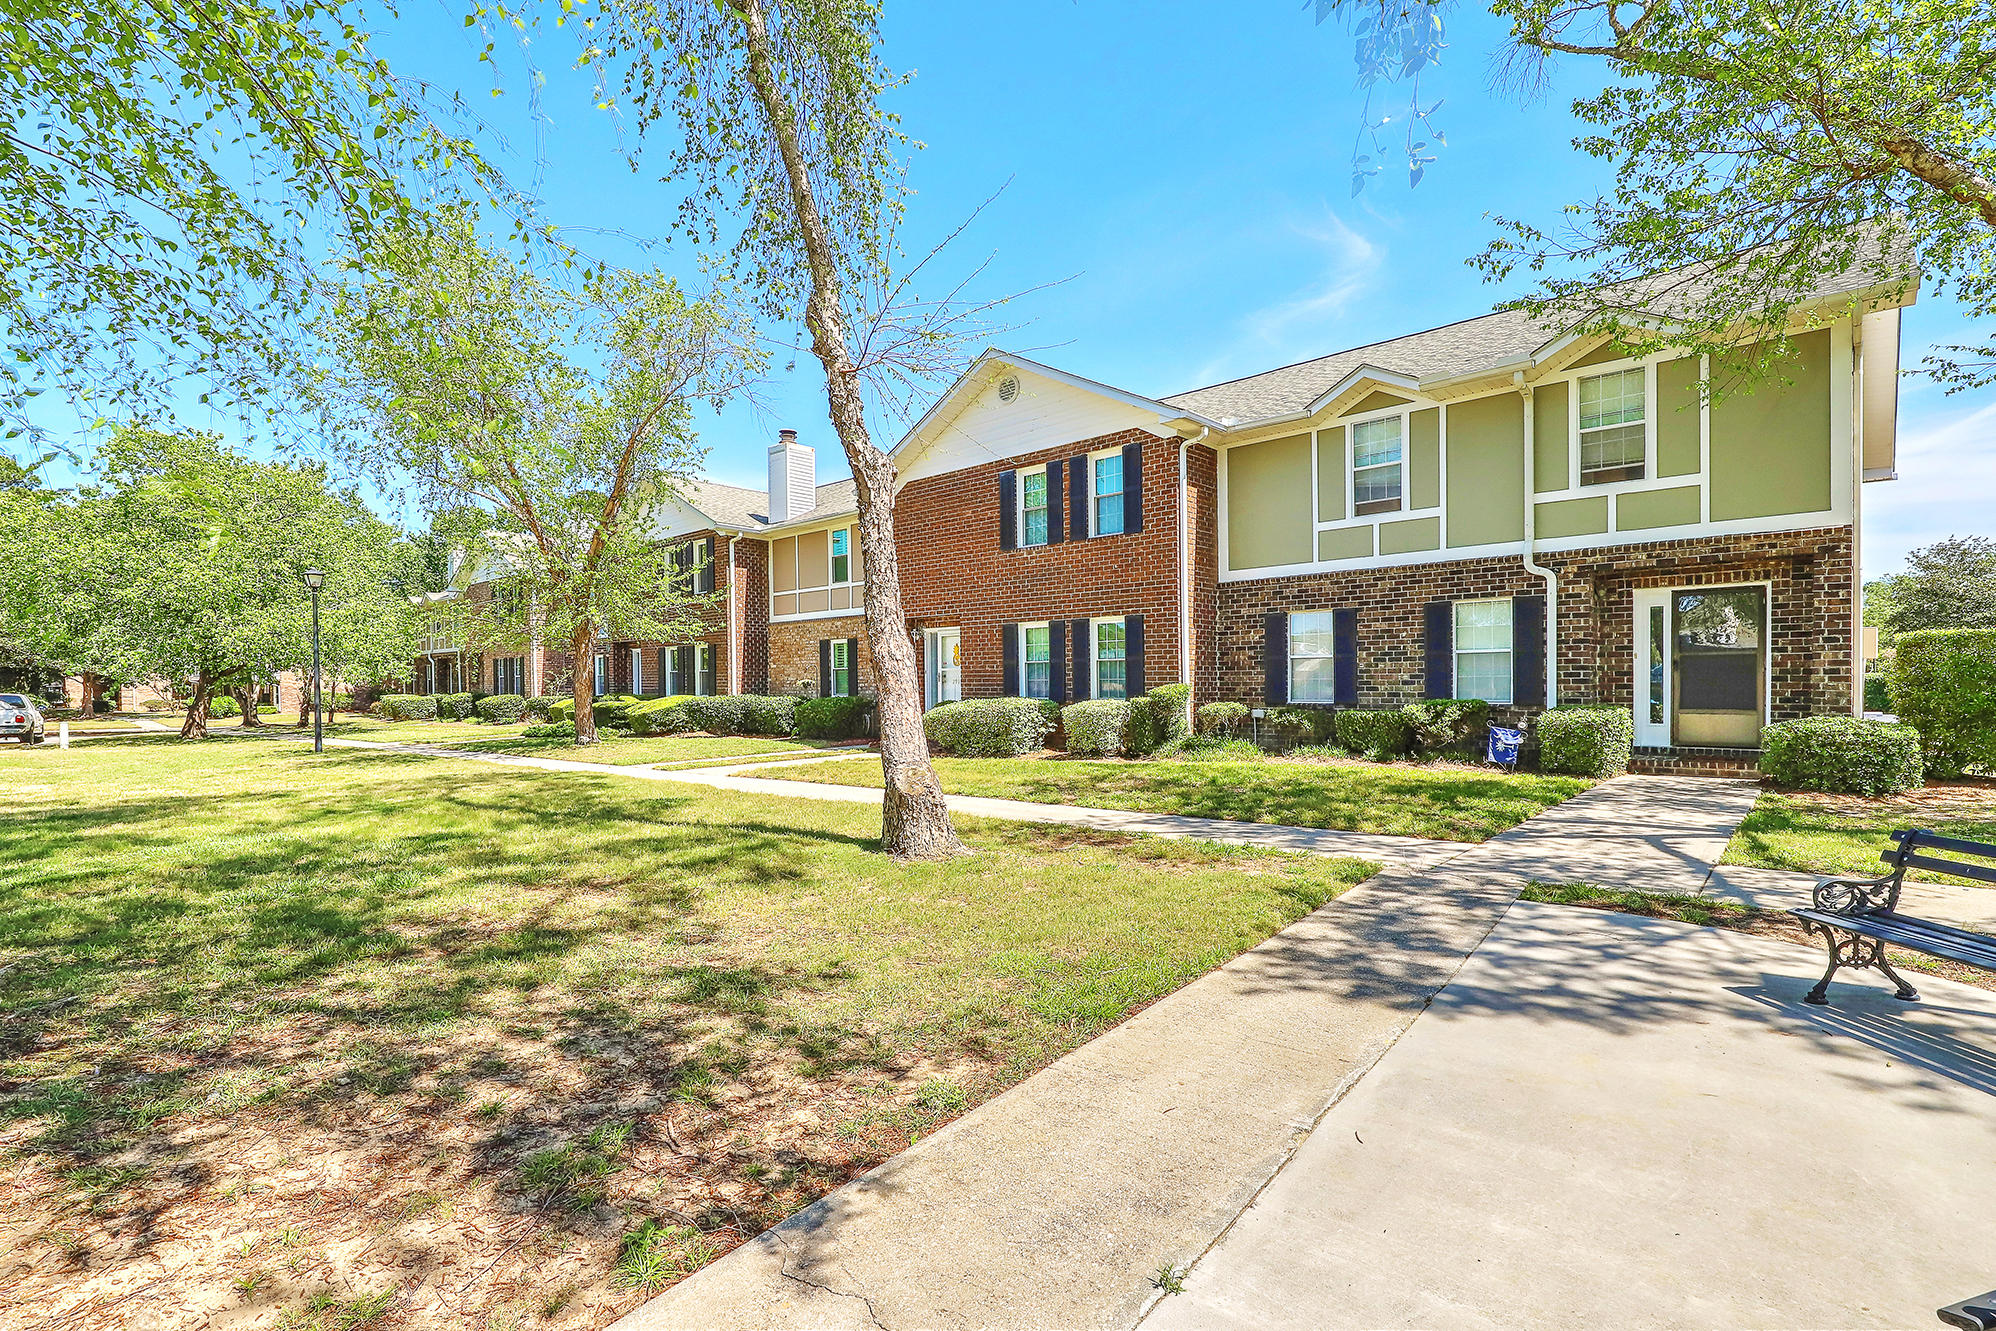 Old Towne Villas Homes For Sale - 2921 Cathedral, Charleston, SC - 36